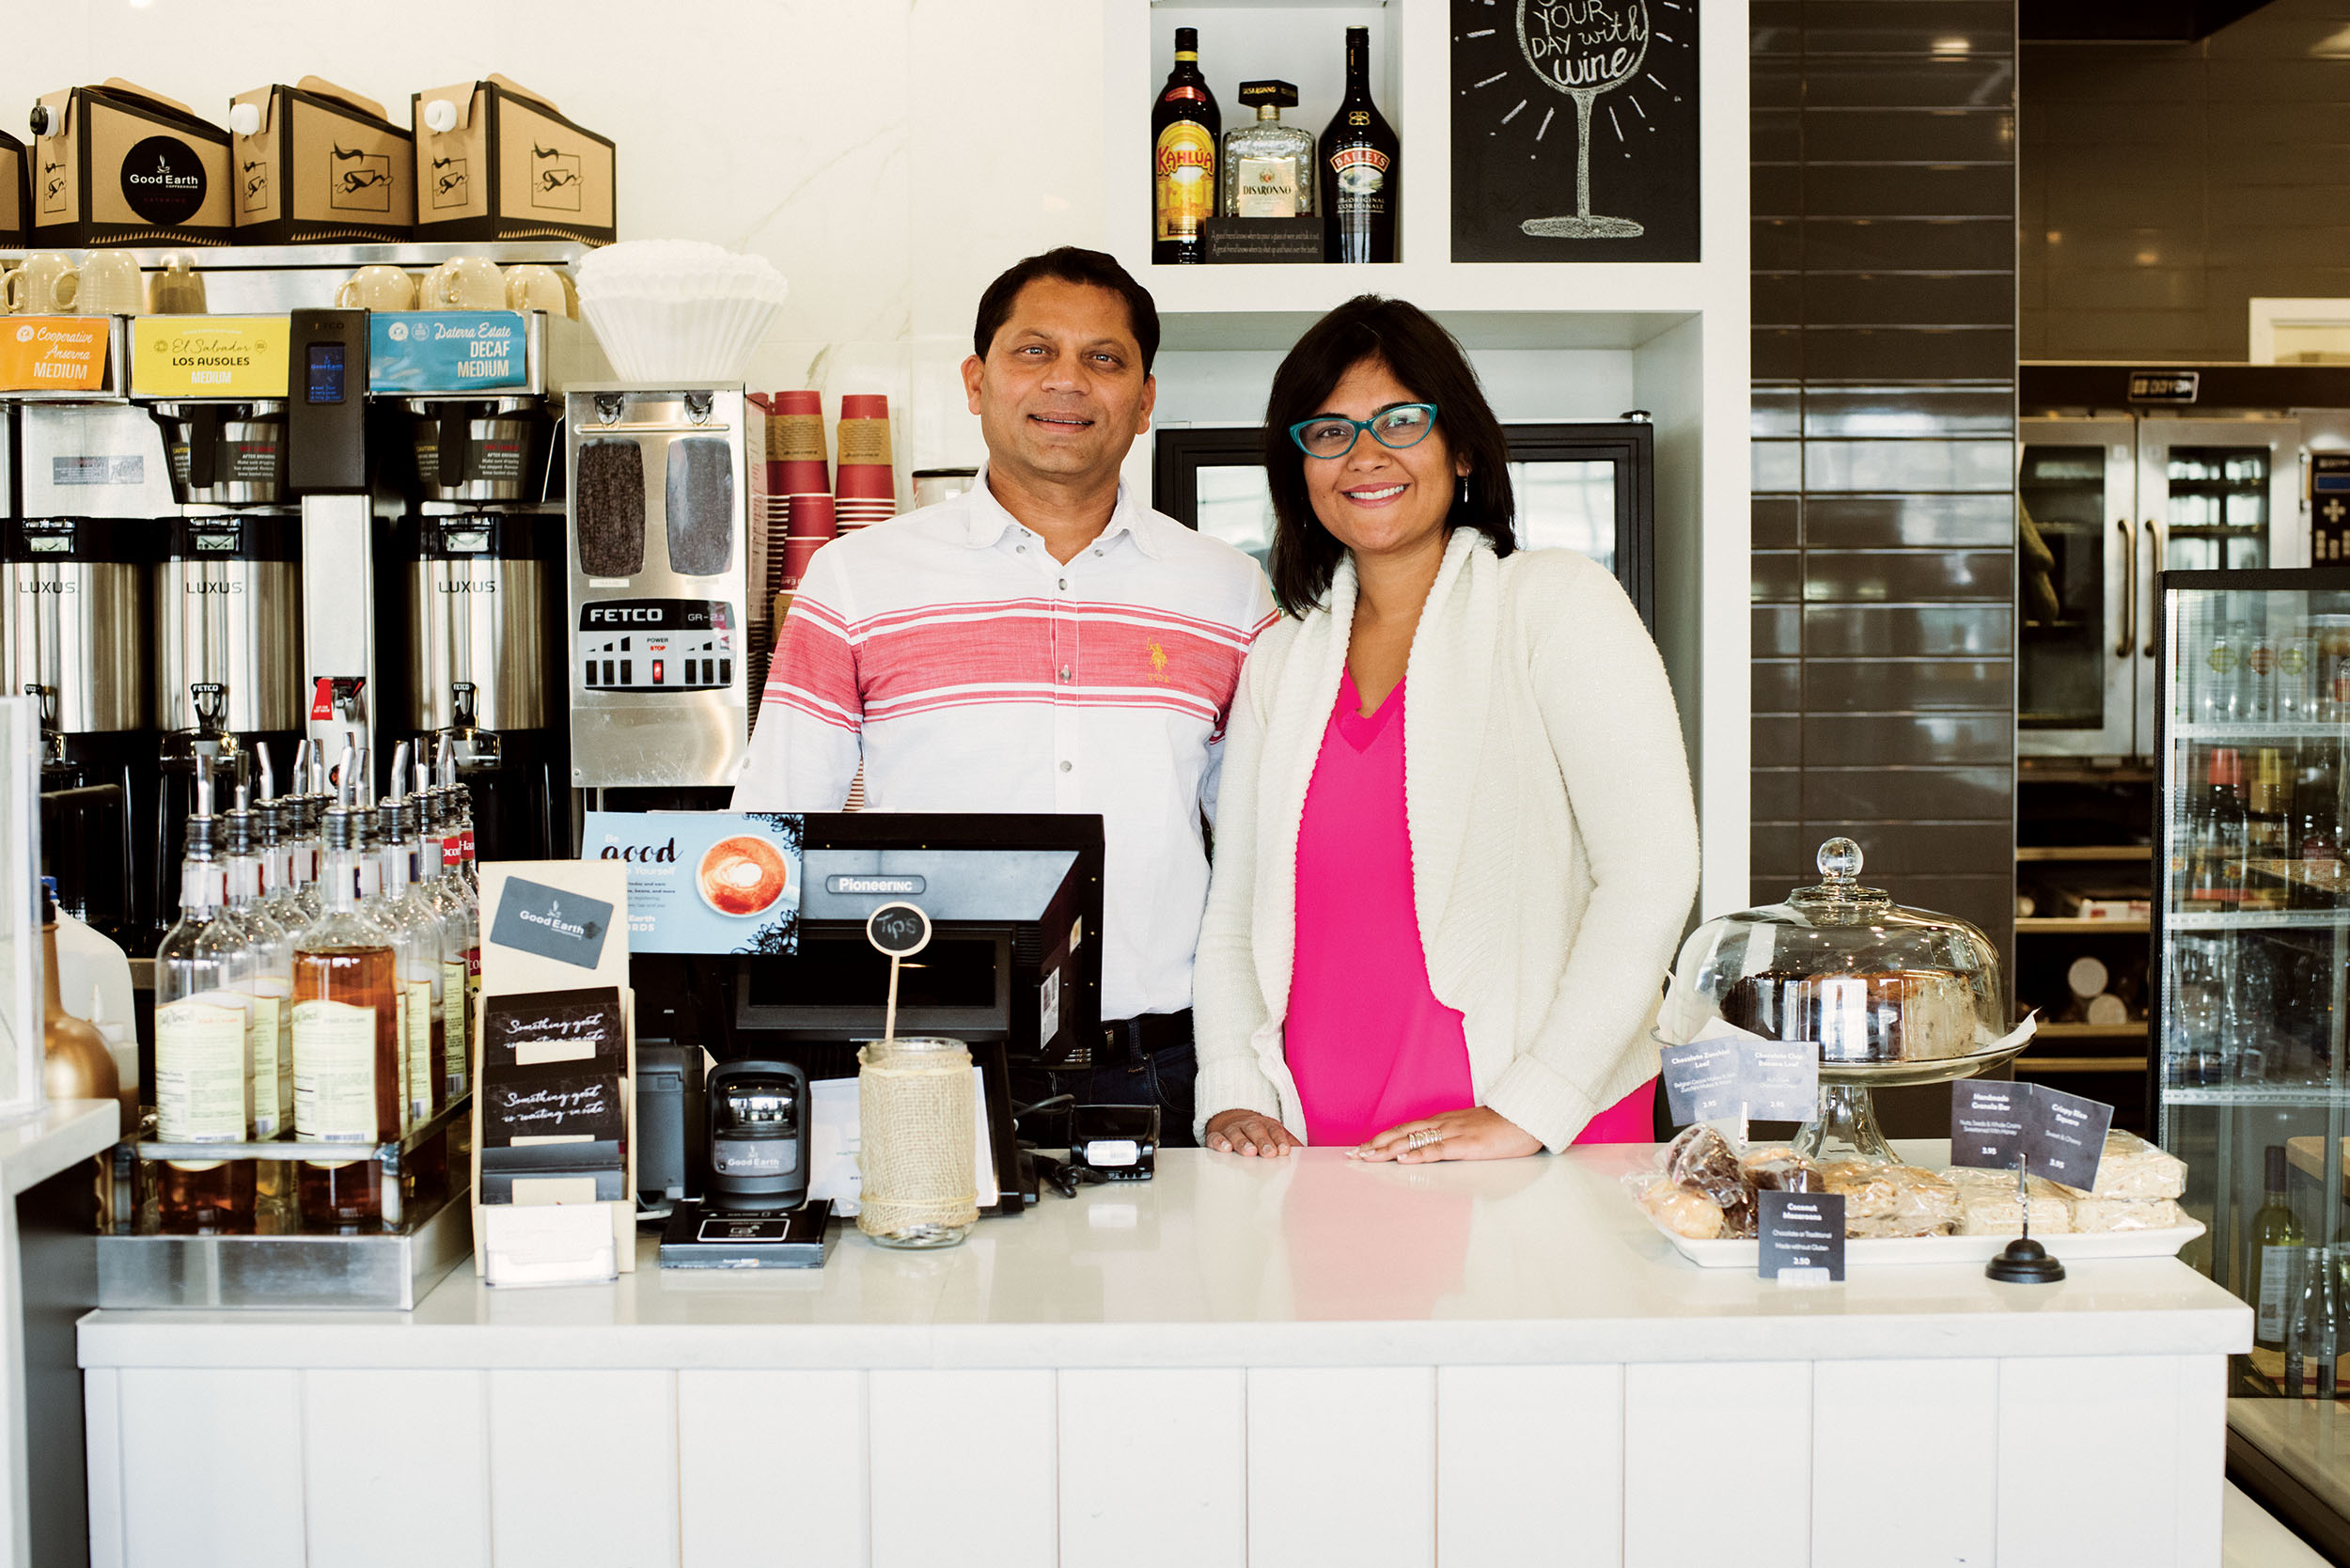 Taking care: Manoj and Ritu Agarwal at the Good Earth Coffeehouse in Strathcona.Photography by Jared Sych.